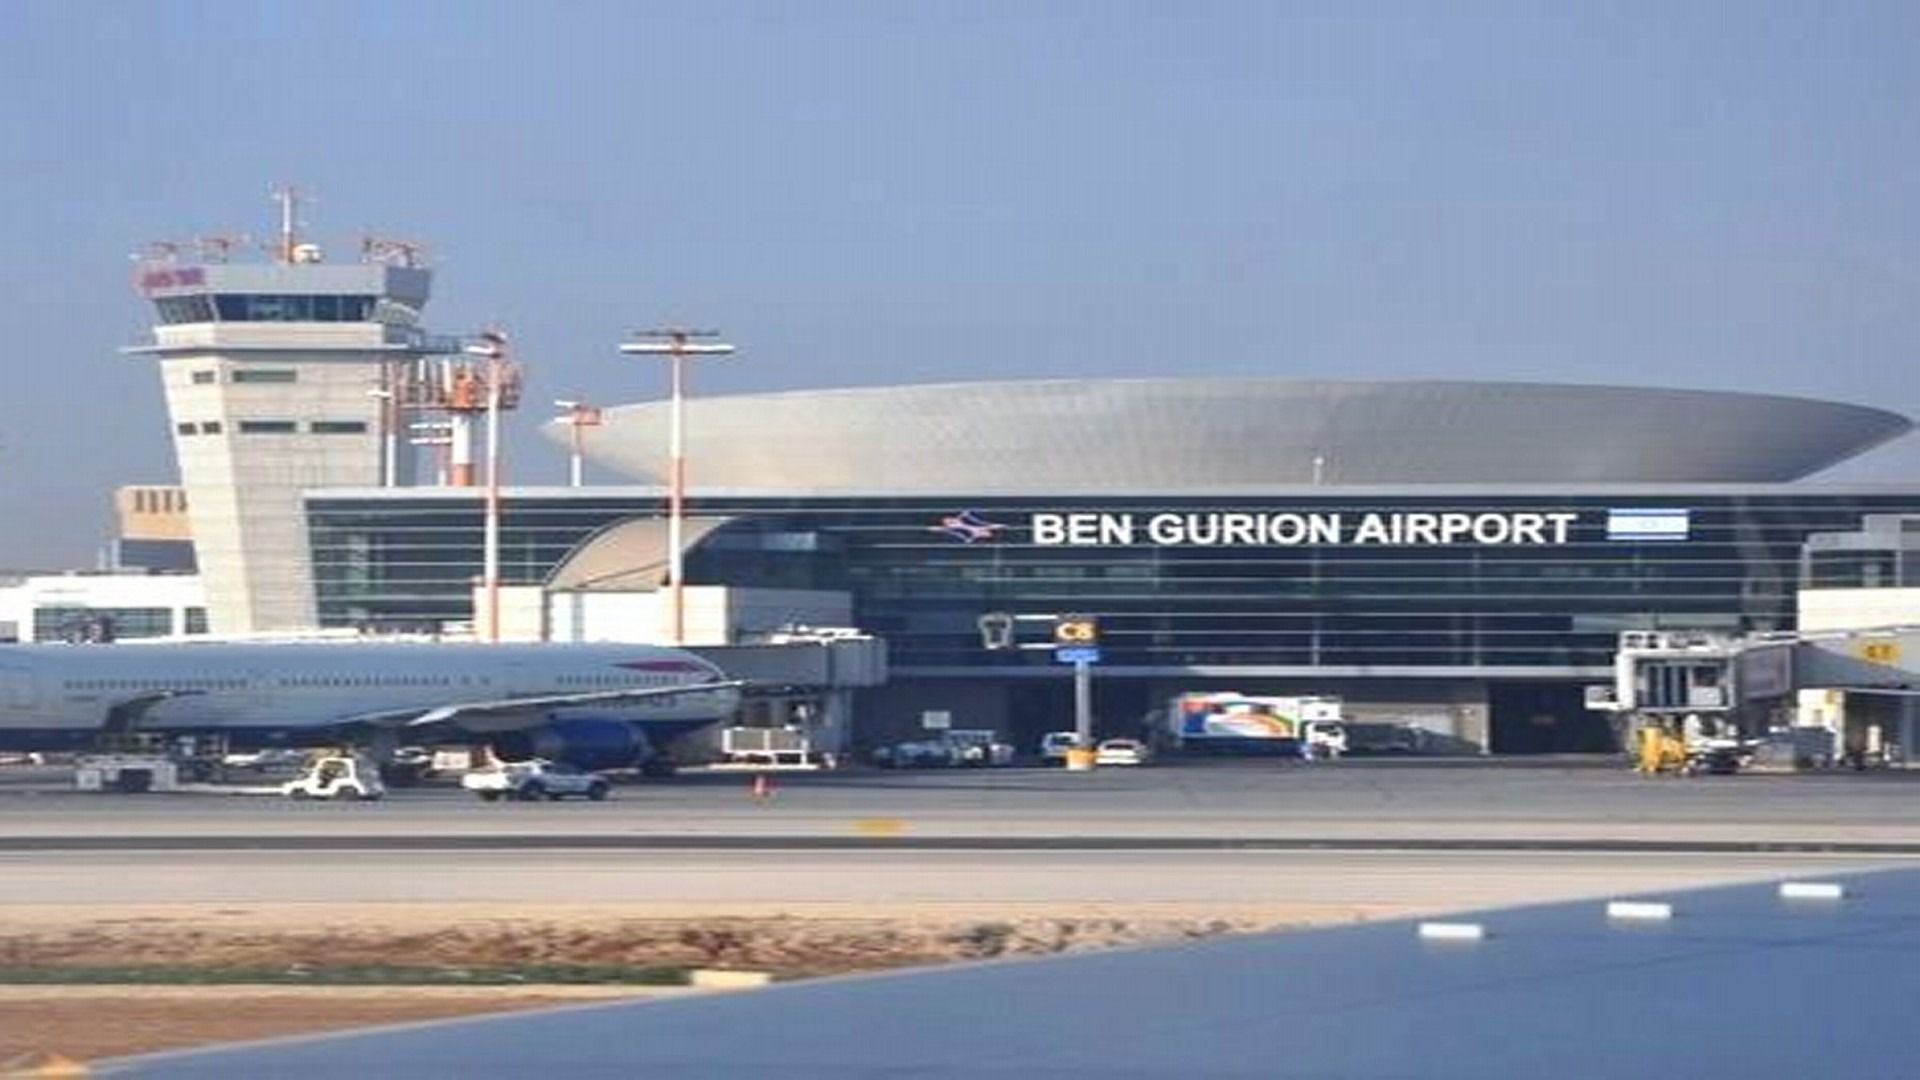 How to get from Ben Gurion to Haifa on Saturday after 1 am